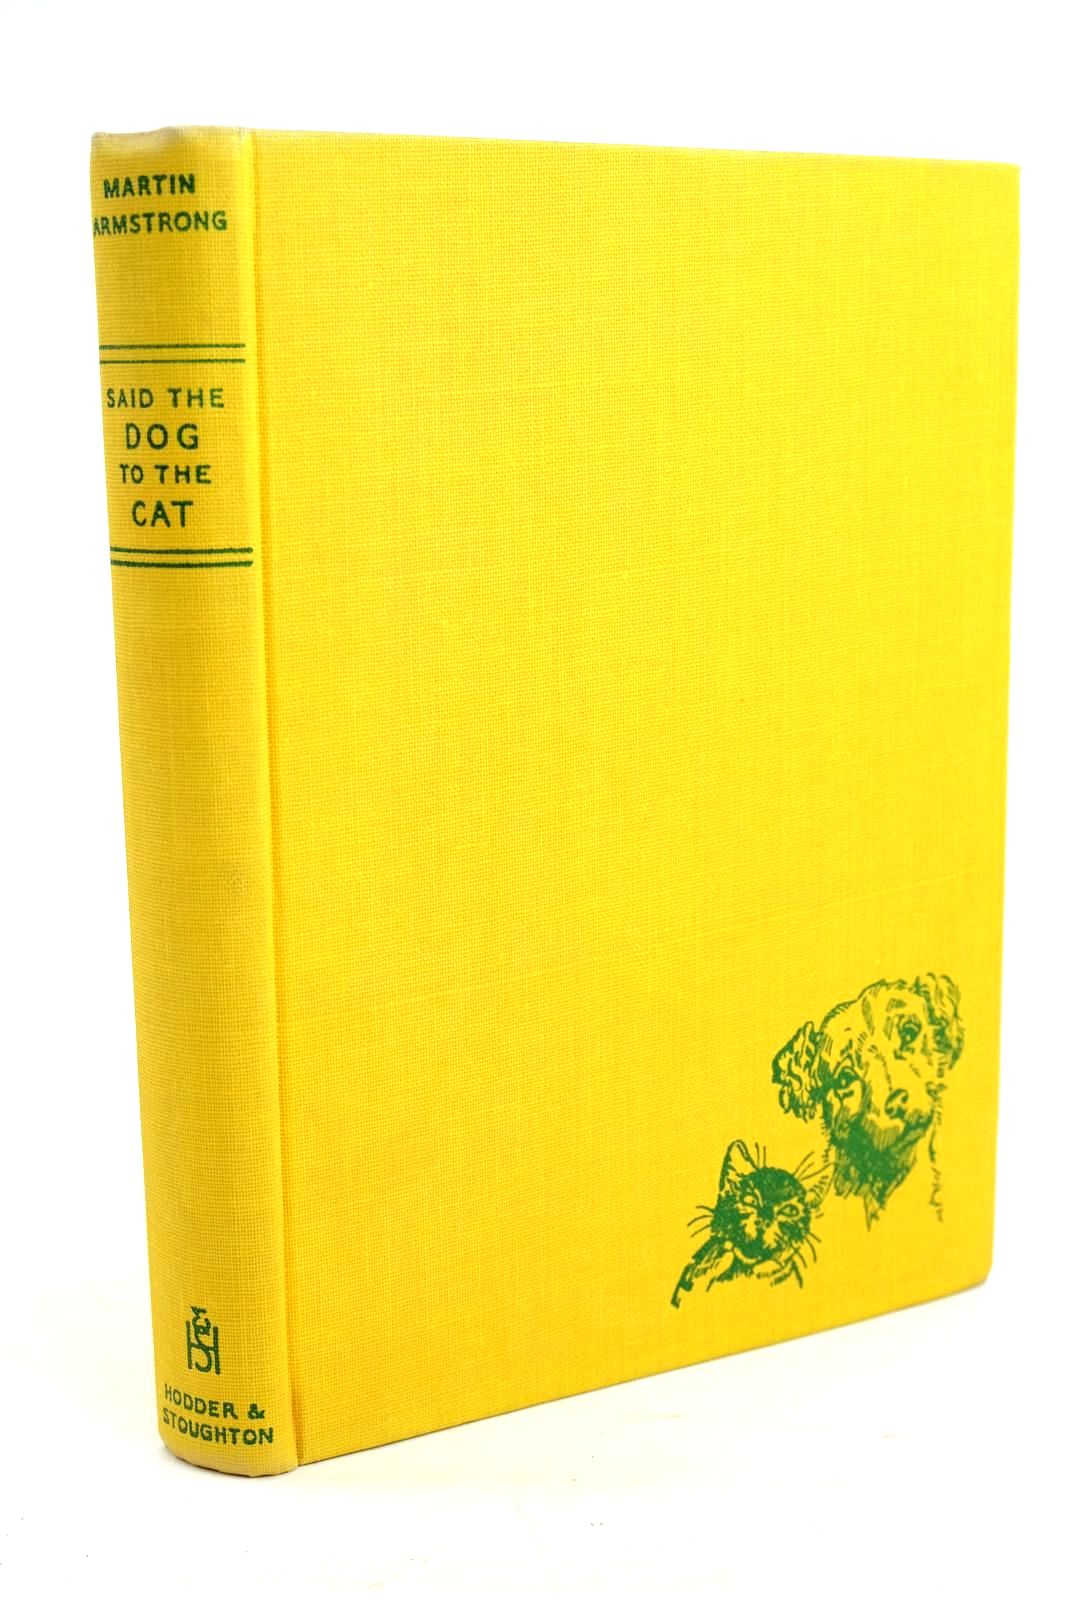 Photo of SAID THE DOG TO THE CAT written by Armstrong, Martin illustrated by May, F. Stocks published by Hodder & Stoughton (STOCK CODE: 1320476)  for sale by Stella & Rose's Books